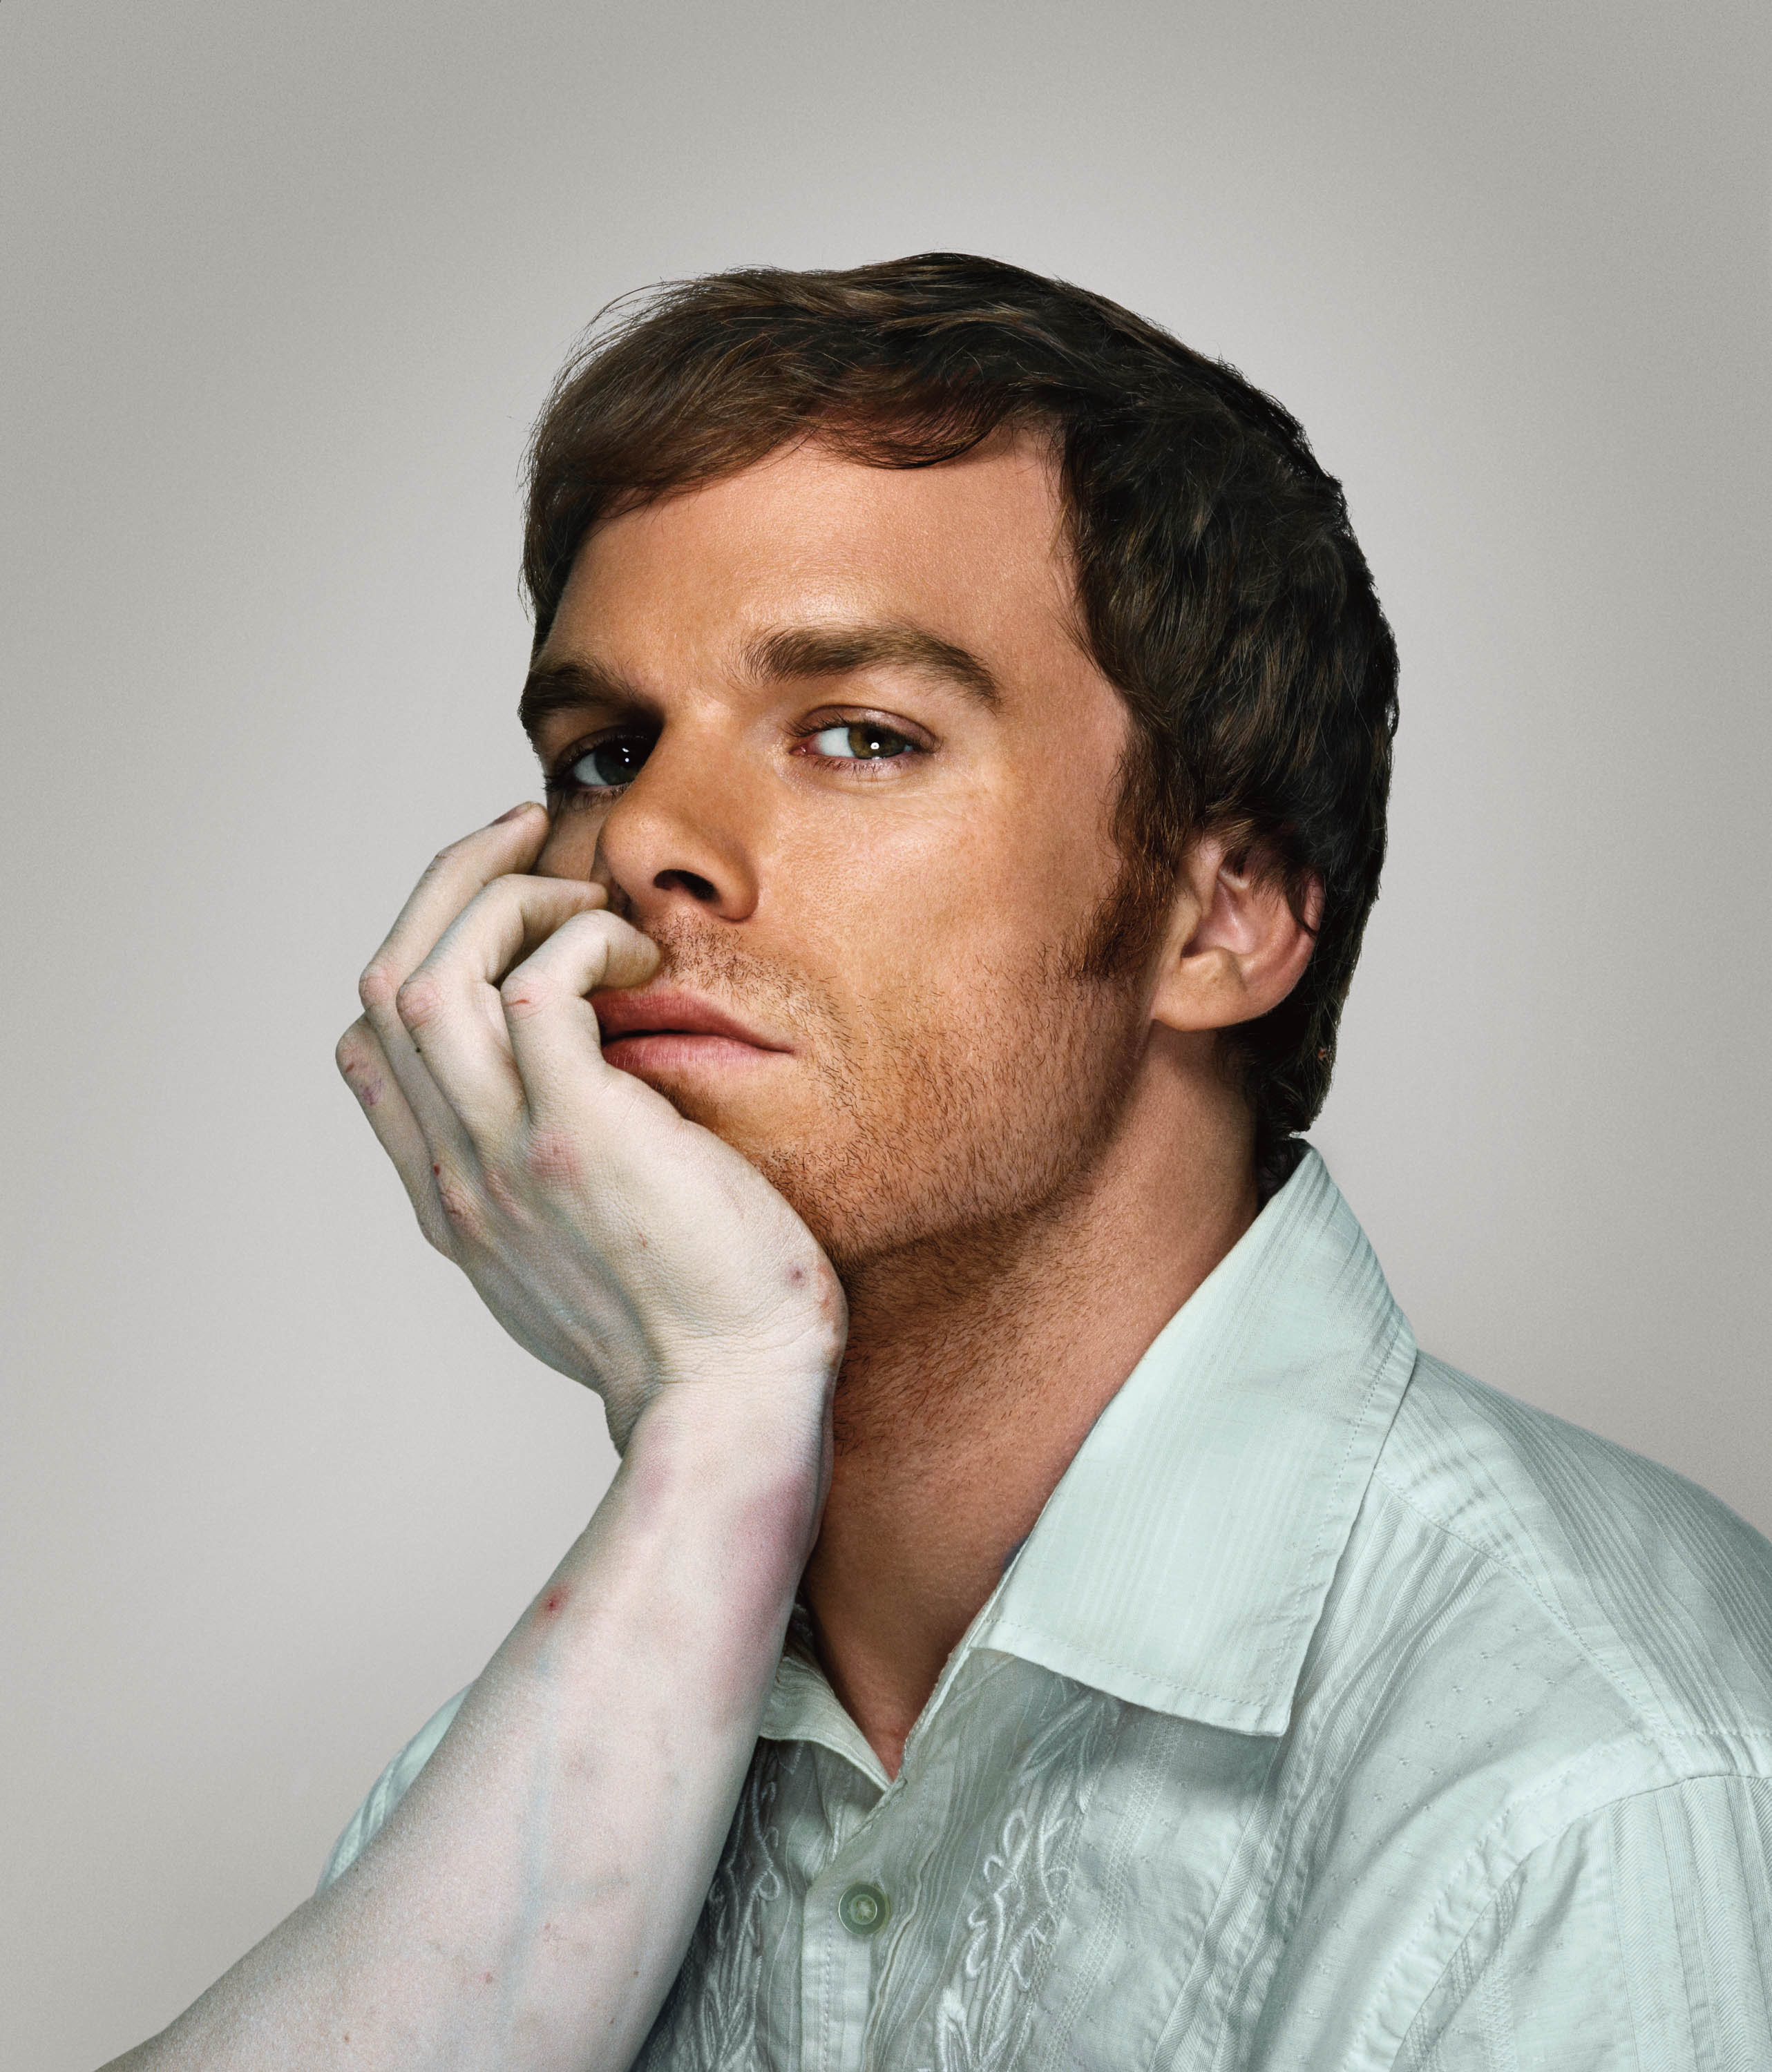 Dexter exec: Some fans will be unhappy with the finale